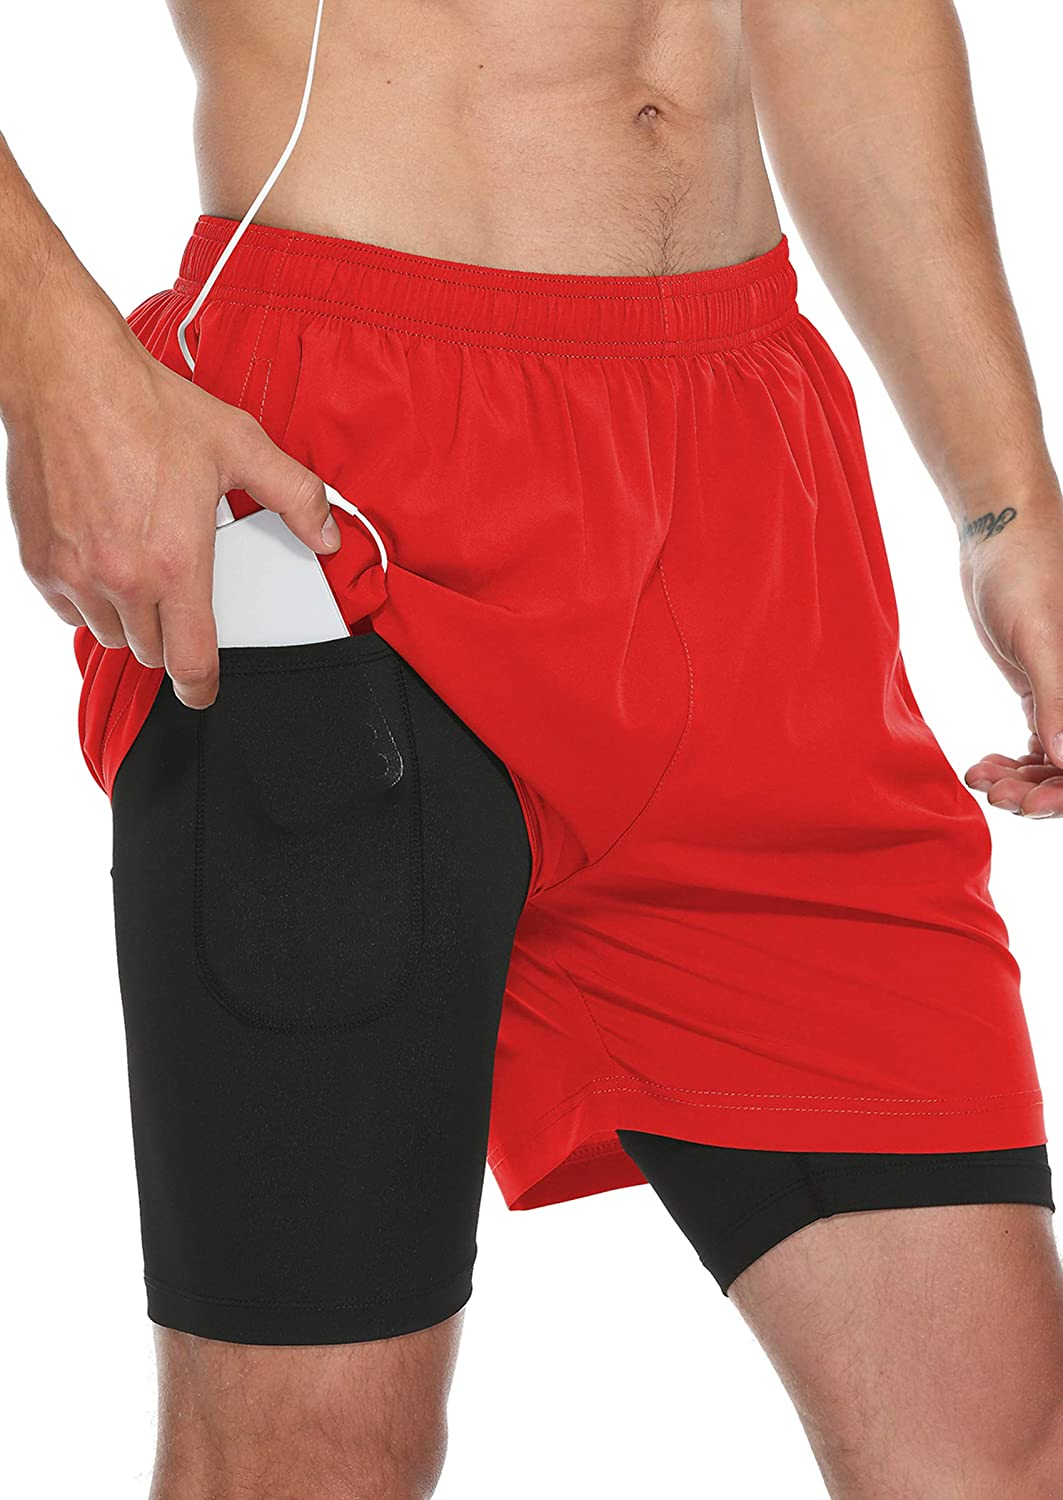 Susclude Men's 2 in 1 Max 84% OFF Workout Shorts Gym Athletic Running New popularity